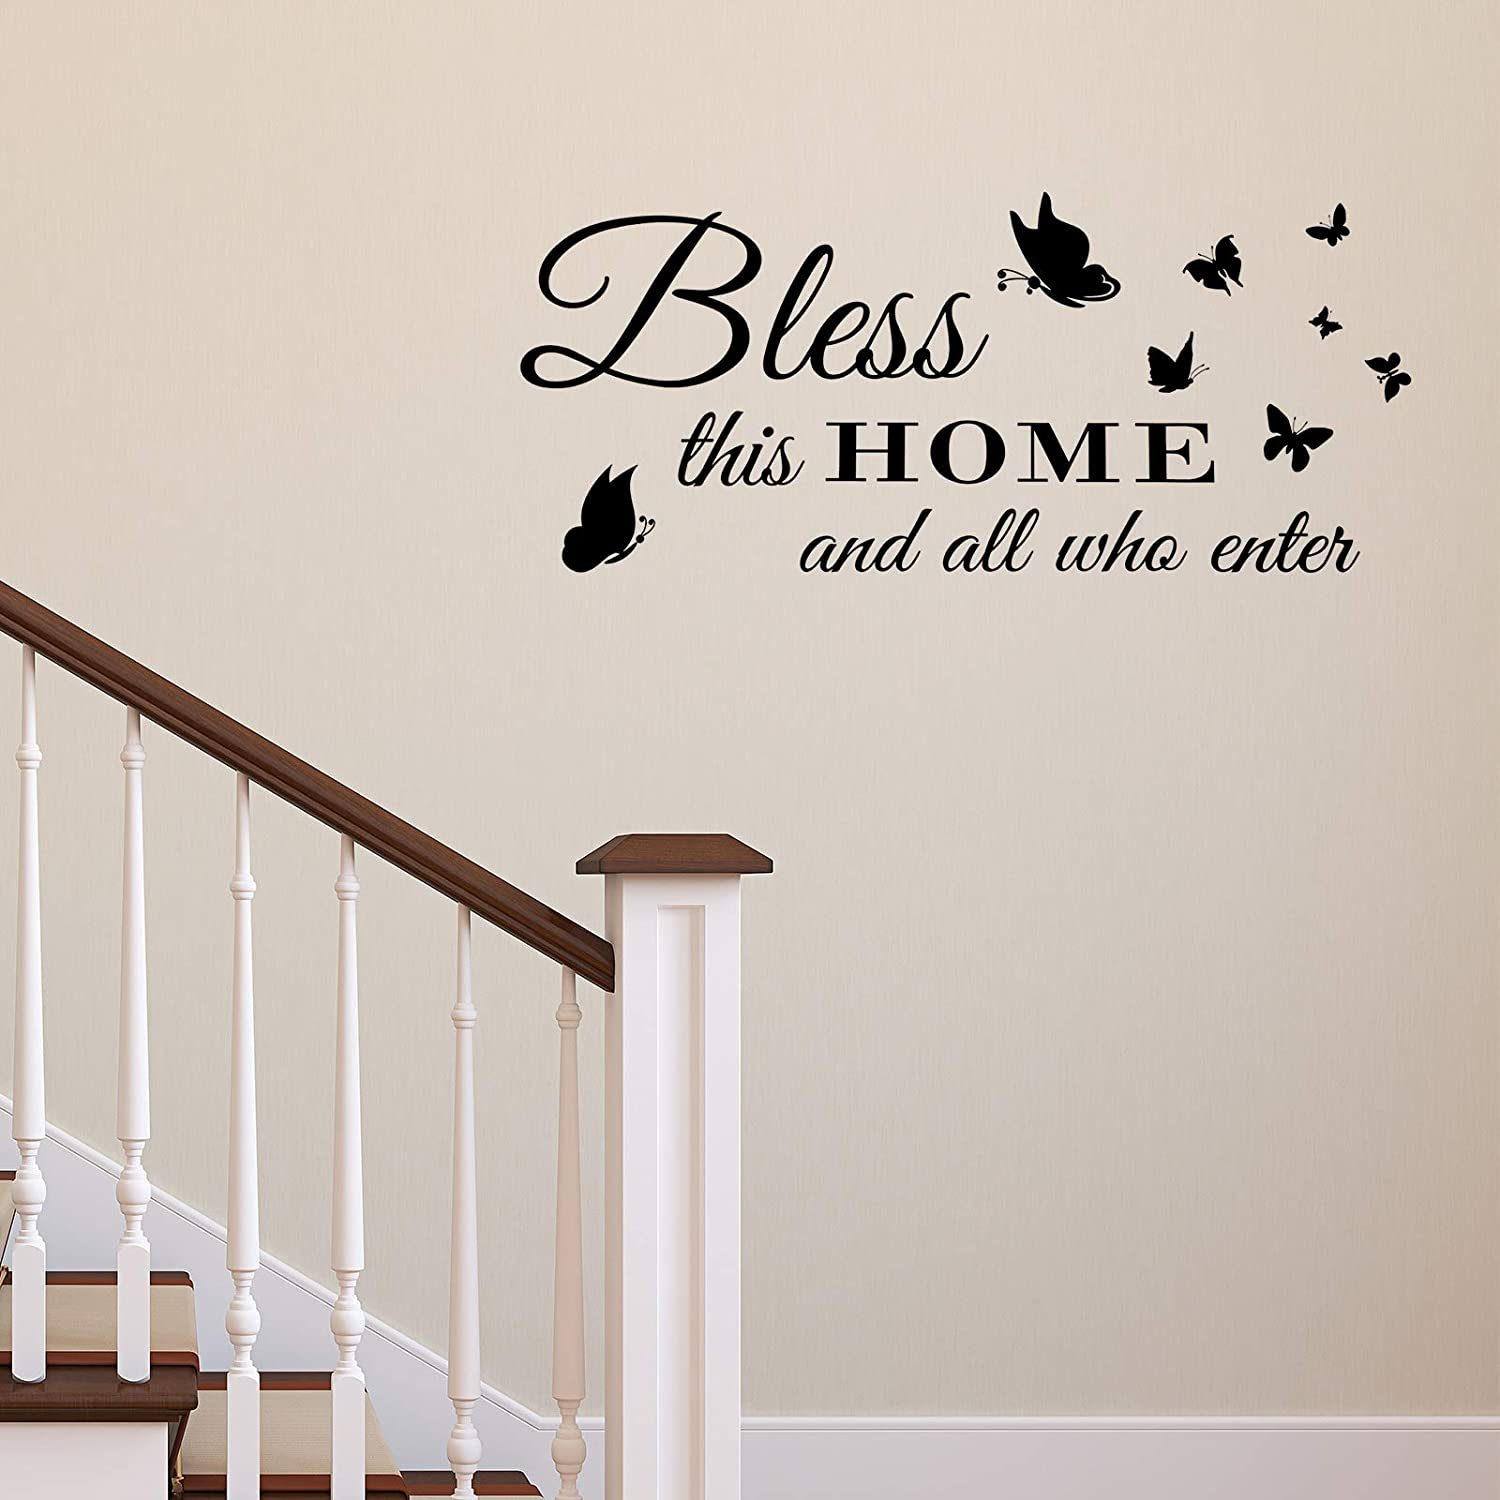 Wall Stickers for Living Room, Blessed Wall Decor Entryway Wall Decals Family Home Decorations Art Quotes Sticker, Bless This Home and All Who Enter (Black Butterfly)